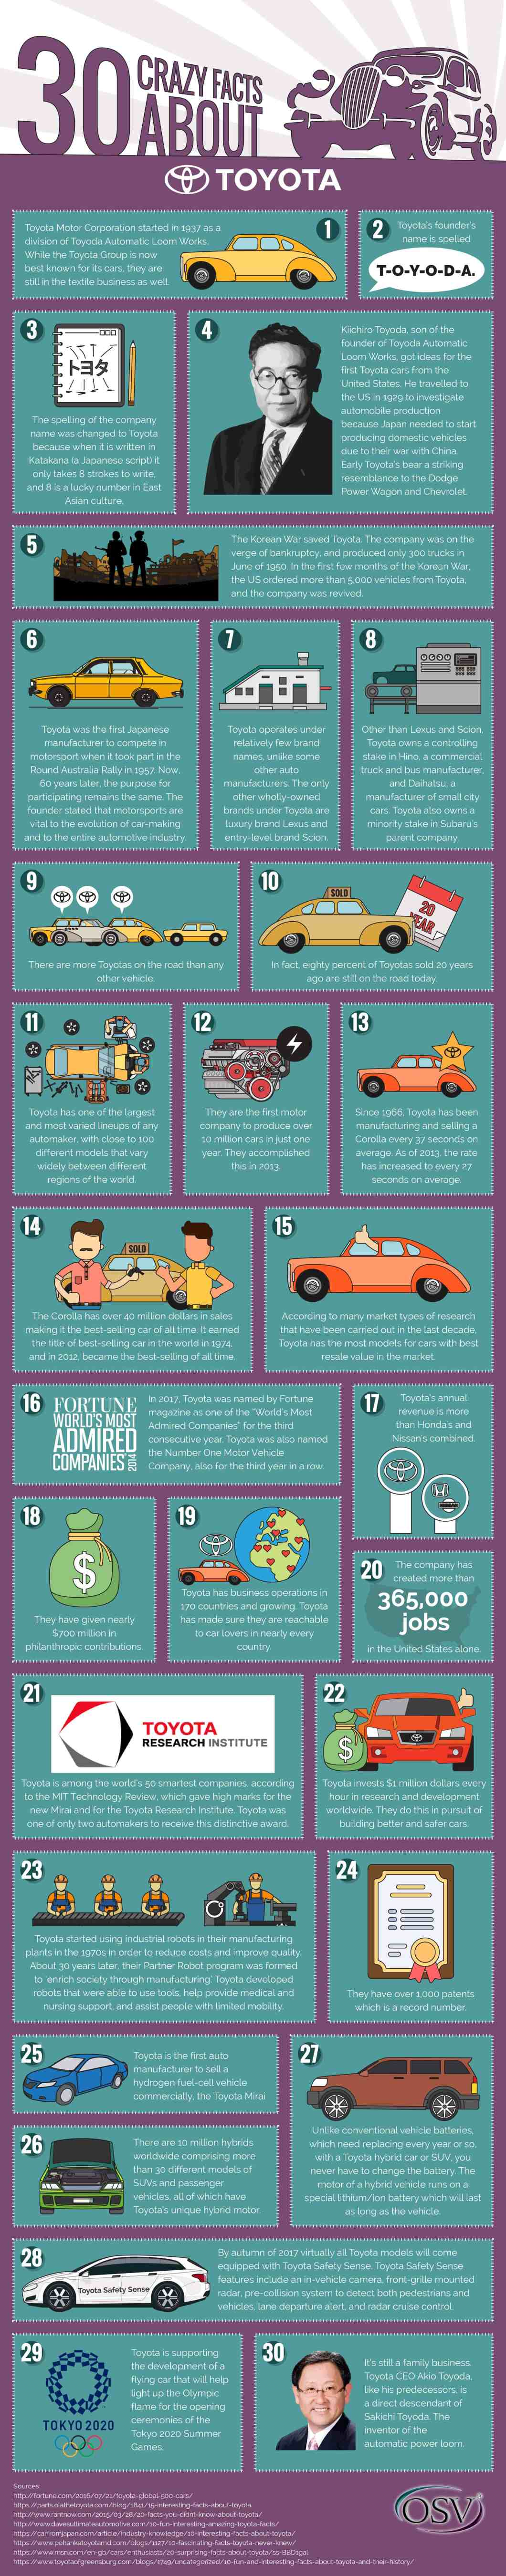 All About the World's No:1 Auto Brand: 30 Crazy Facts About Toyota - Infographic